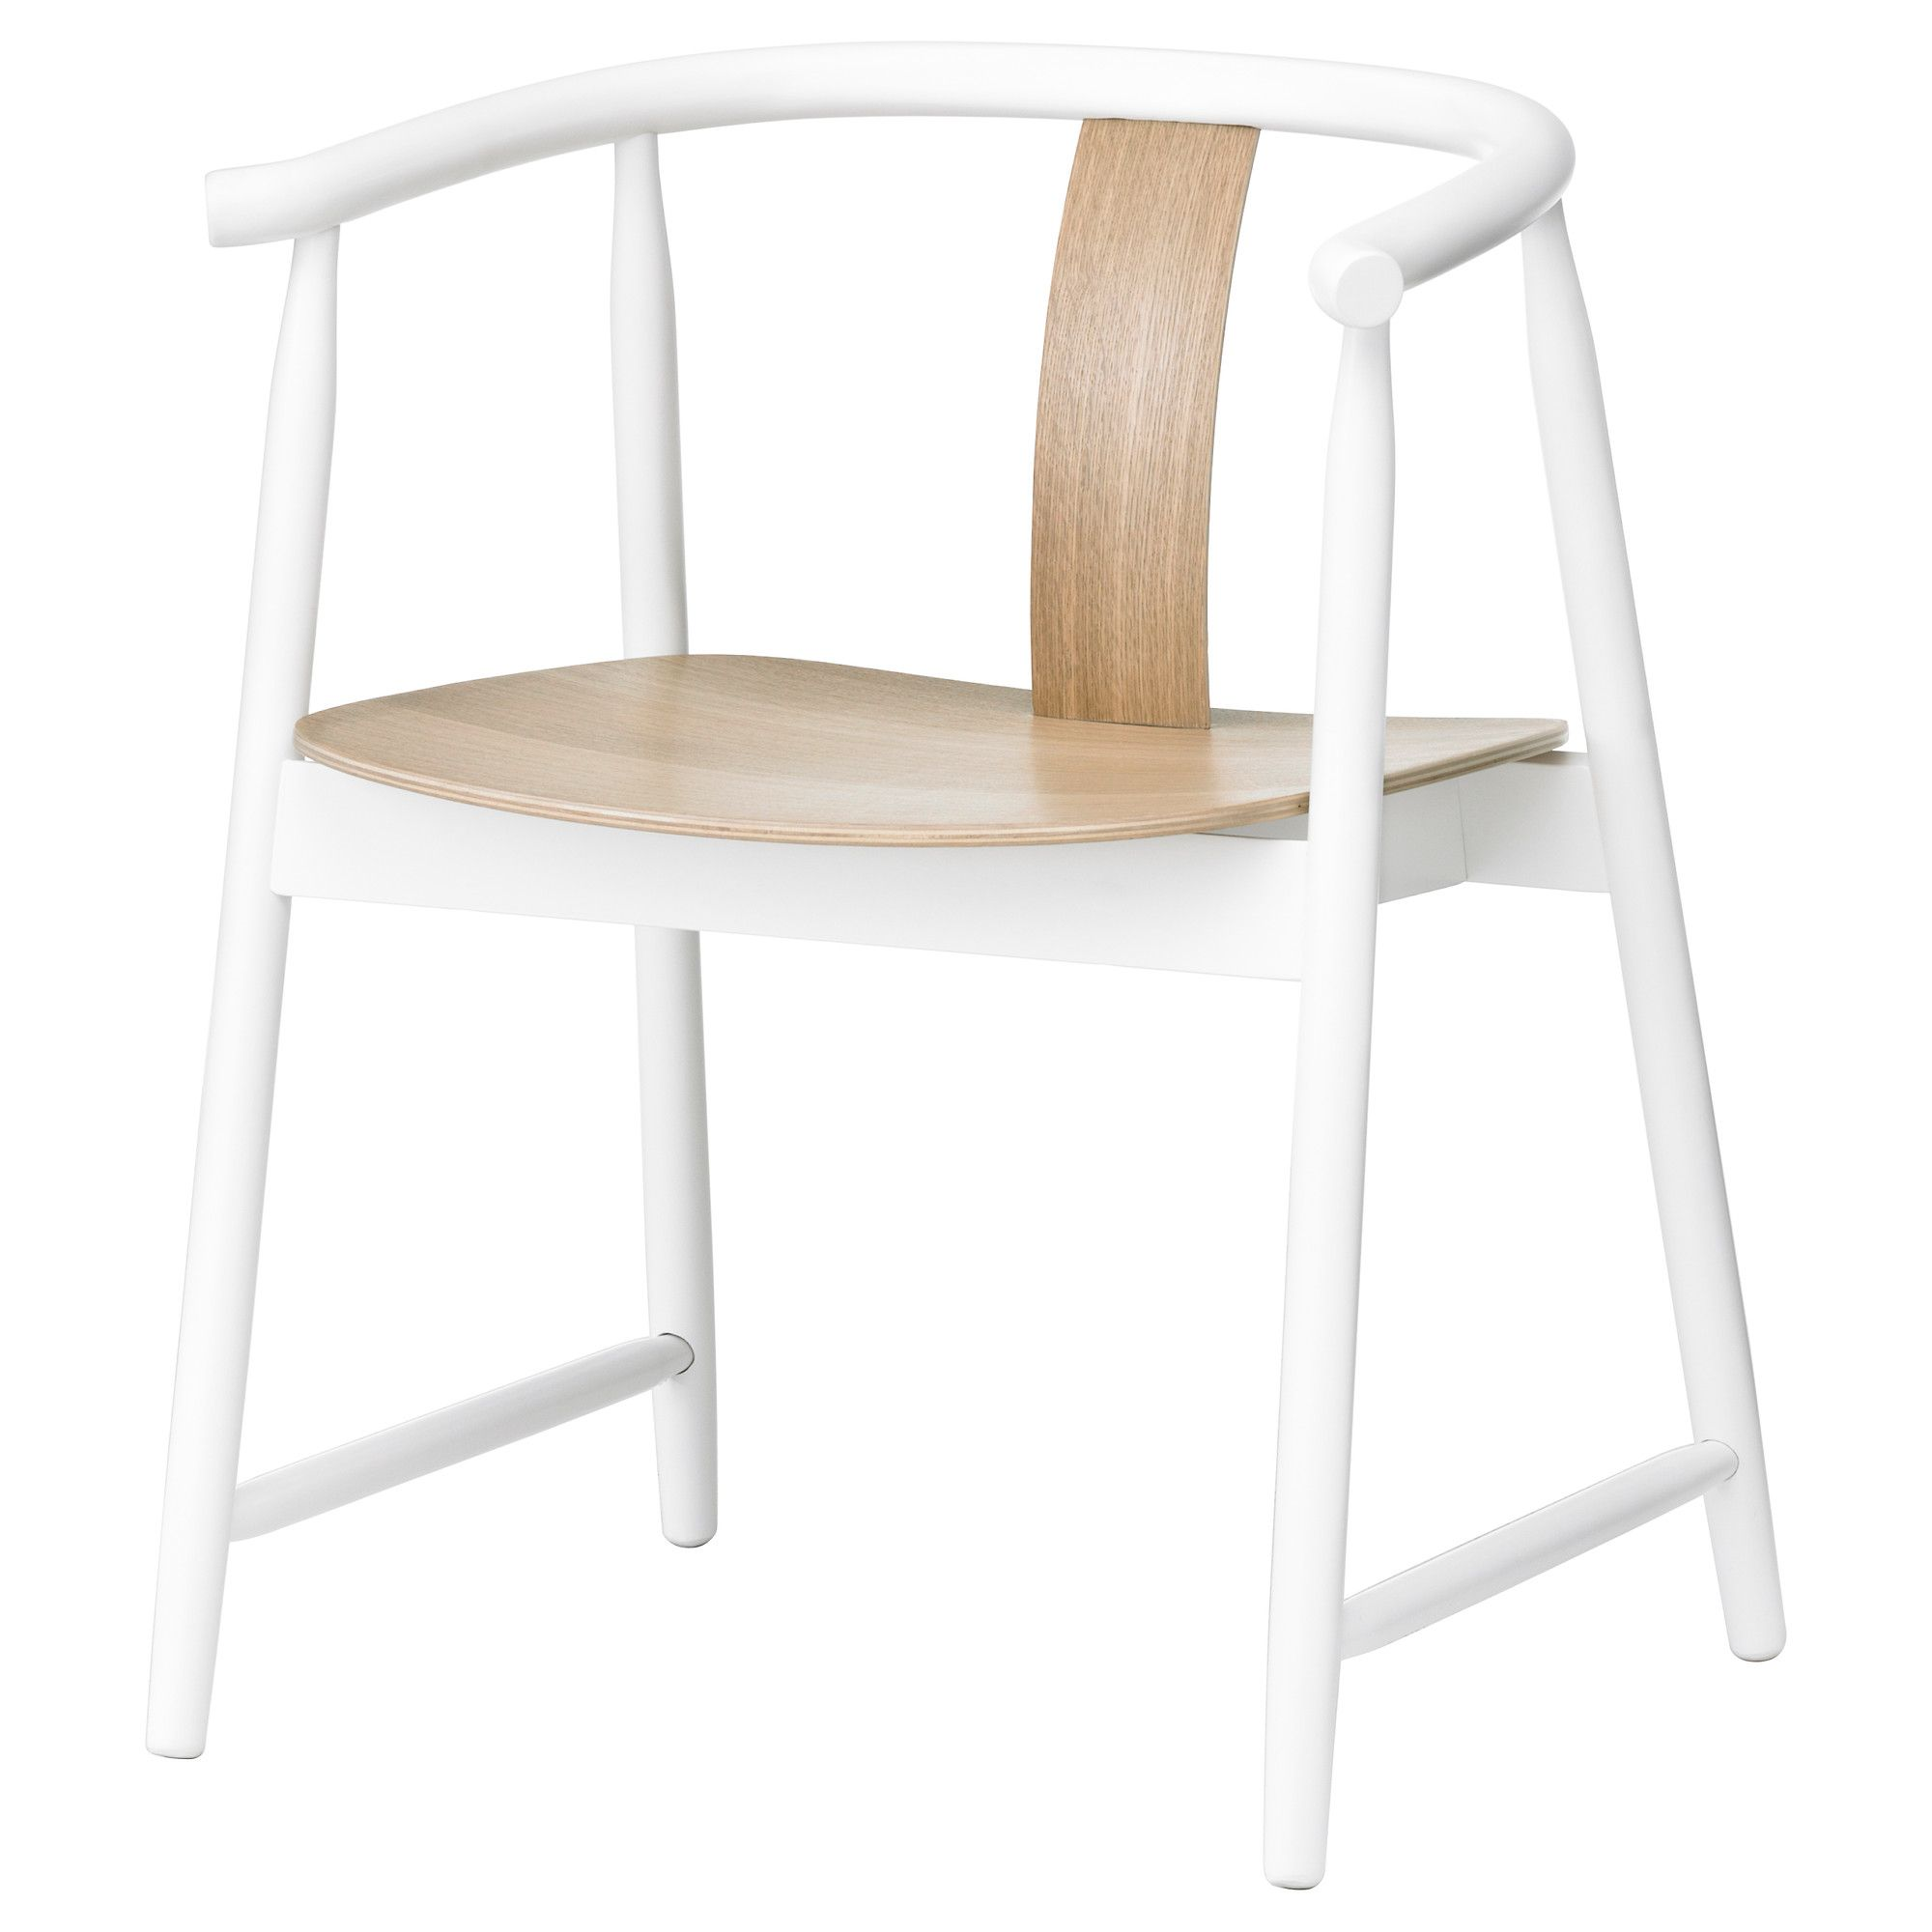 ikea canada dining room chair covers high girl trendig 2013 armchair white natural interior